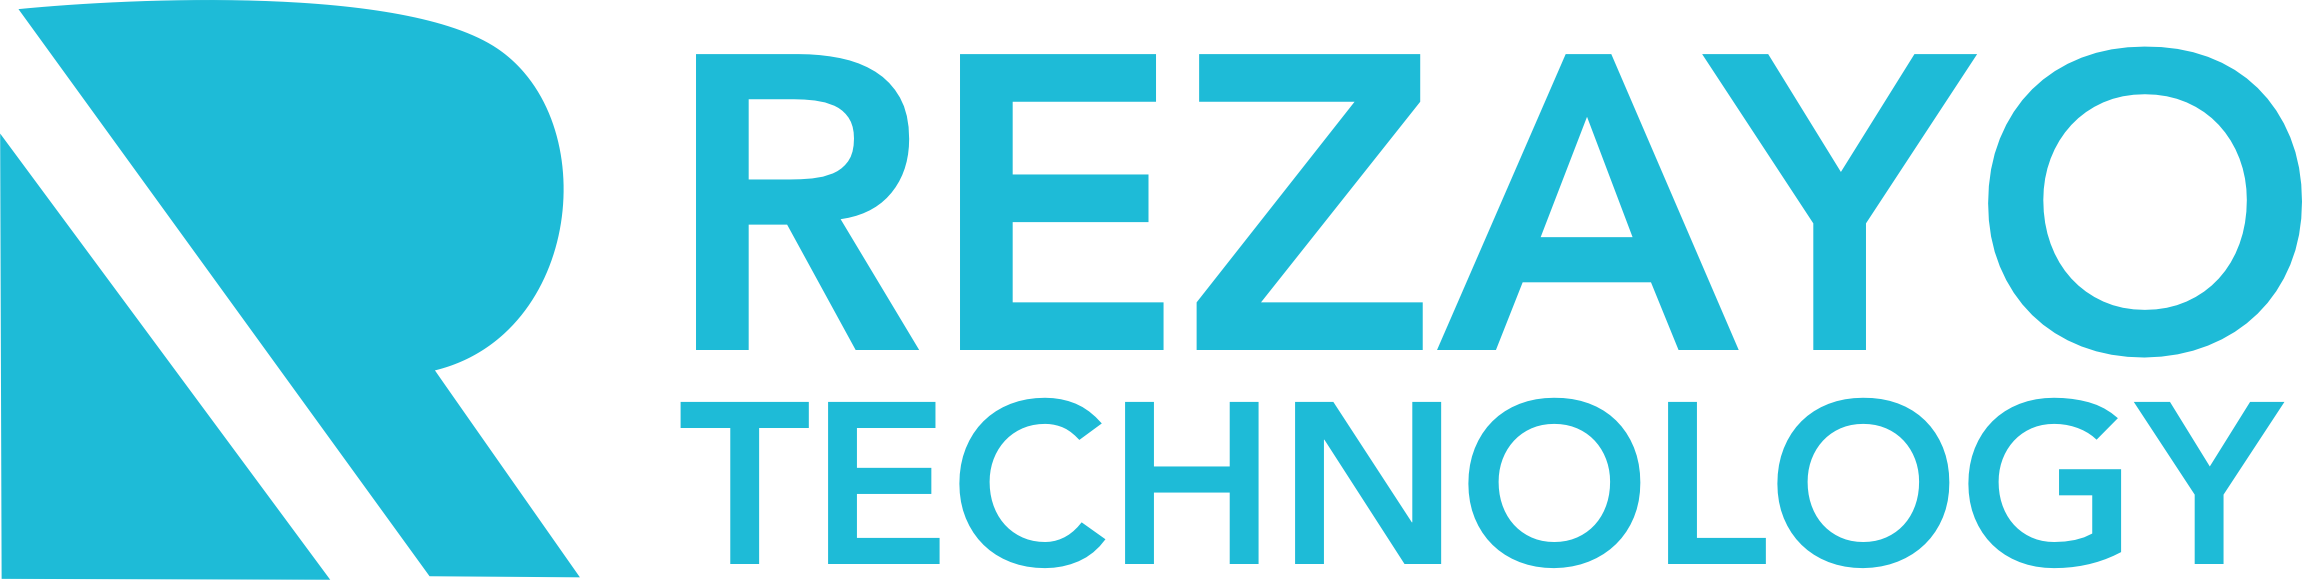 Rezayo Technology